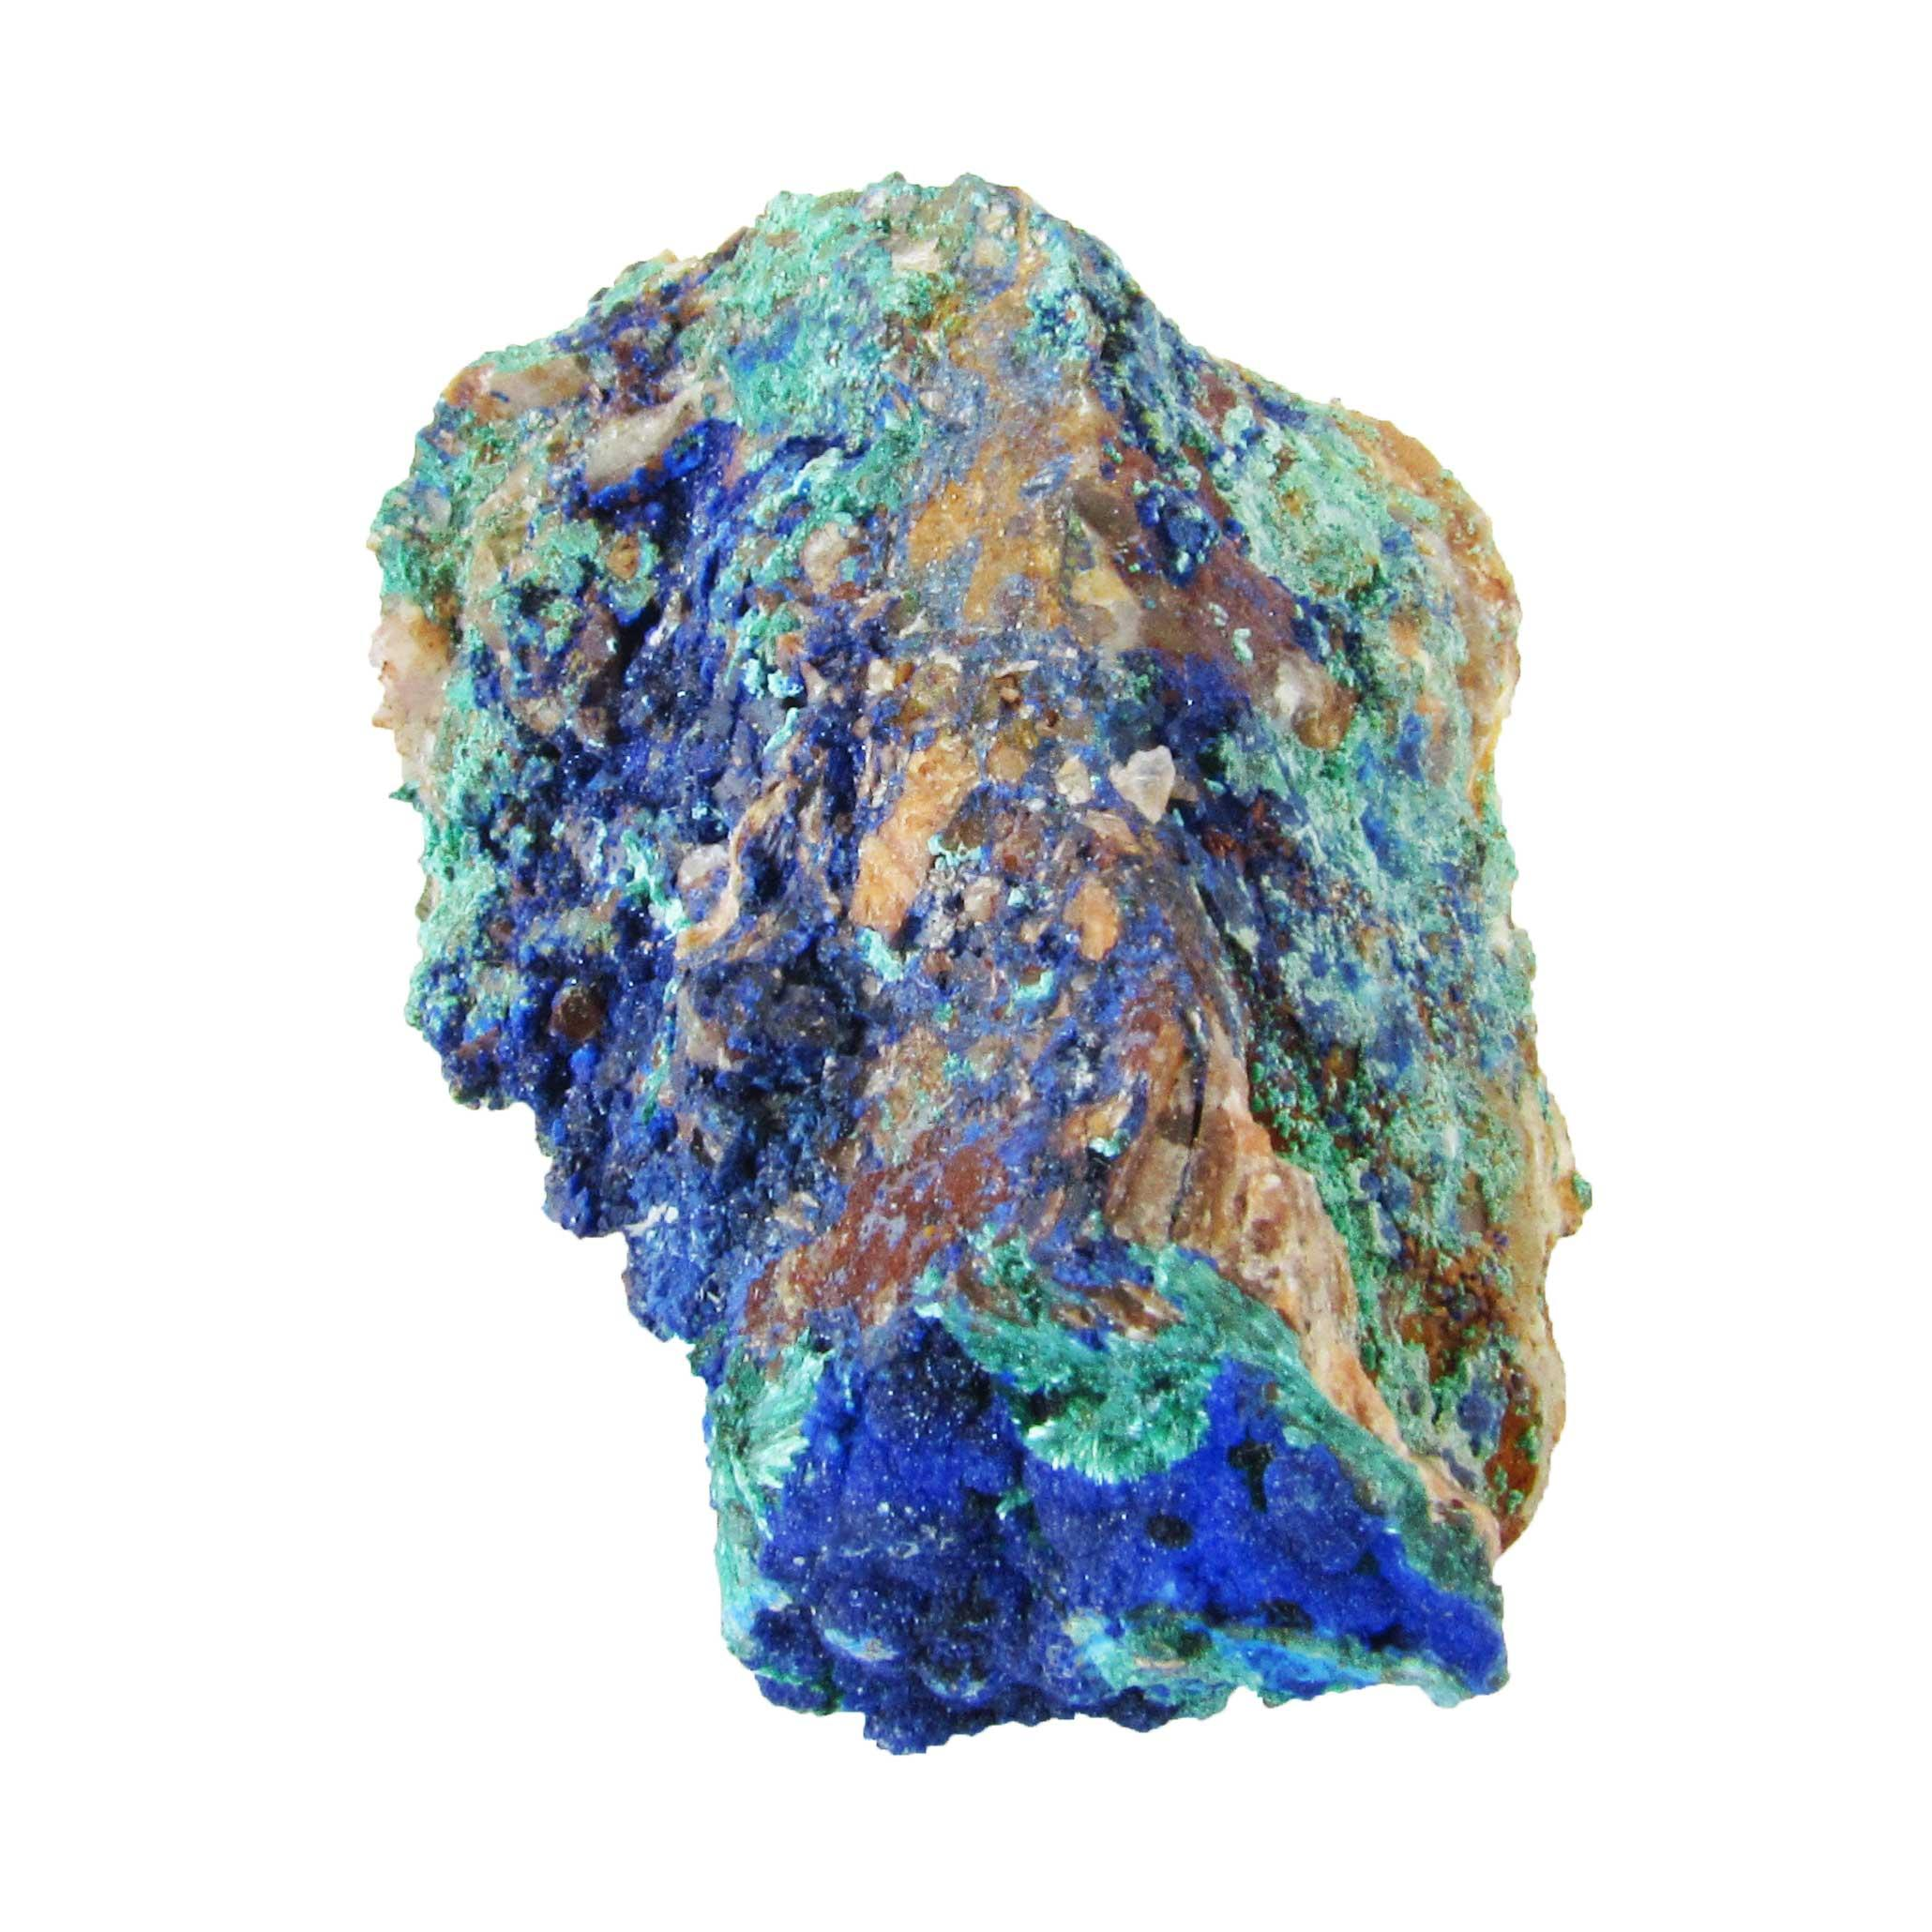 crystal azurite stone gem ideal for Third Eye and Throat chakra healing rituals forthefeels